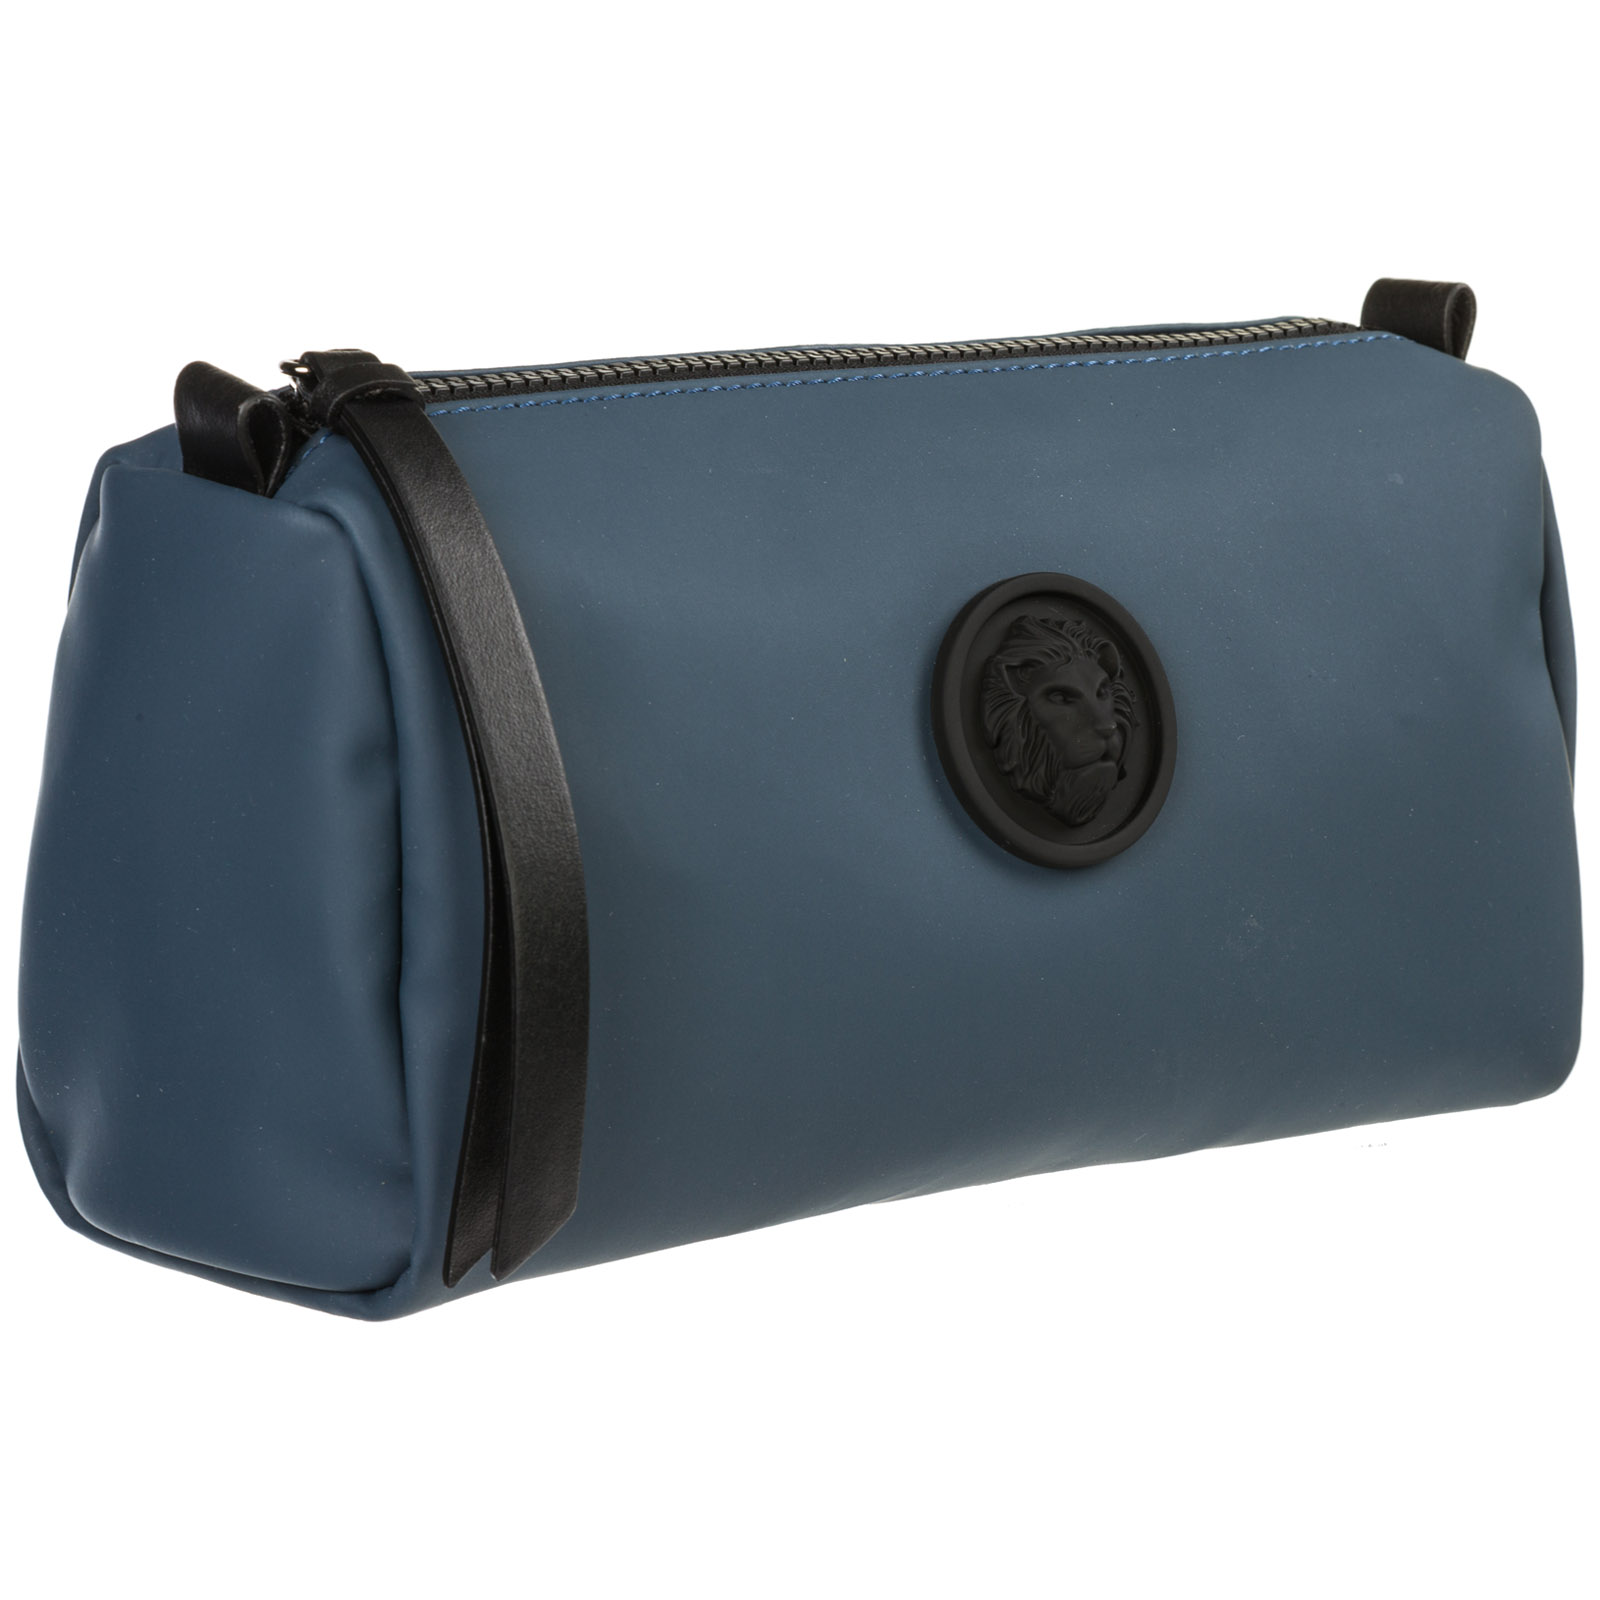 Men's travel toiletries beauty case wash bag lion head